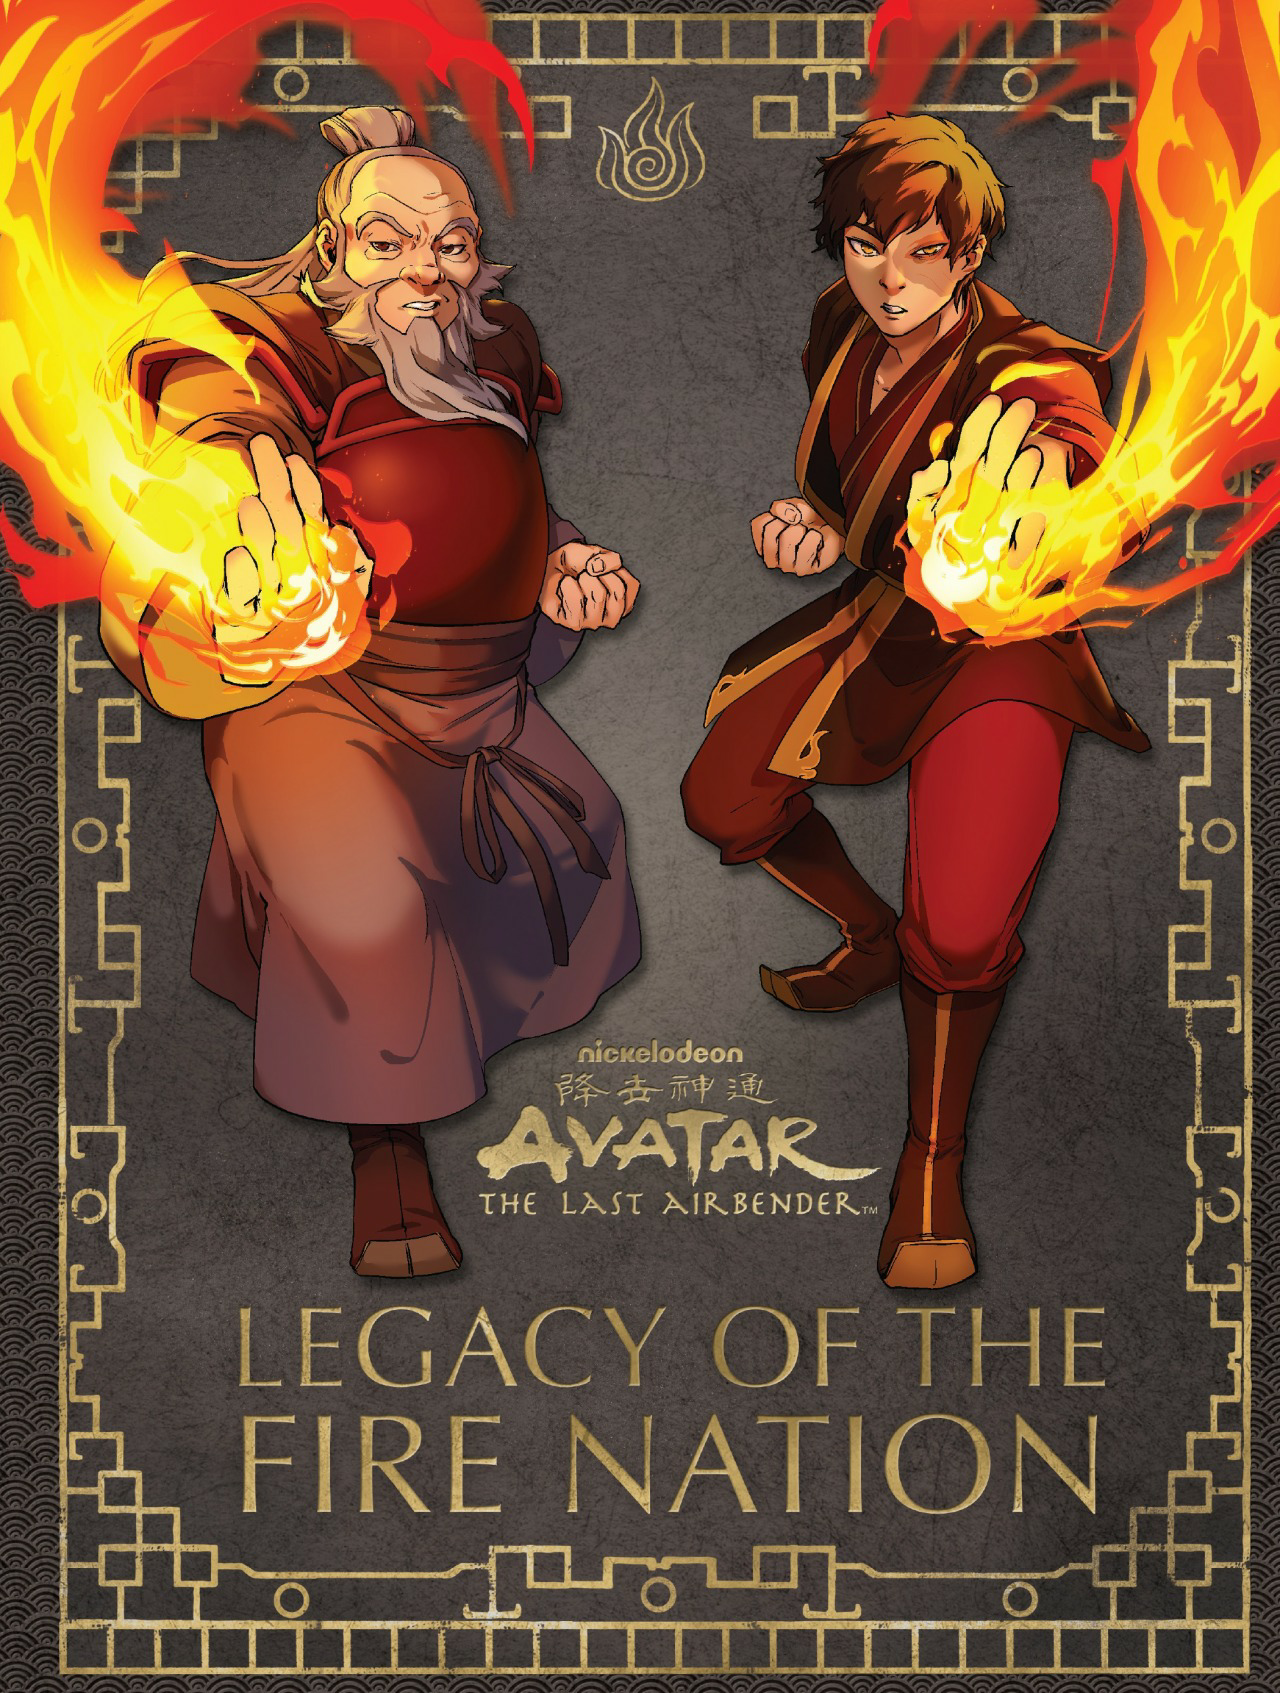 Avatar: The Last Airbender: Legacy of the Fire Nation